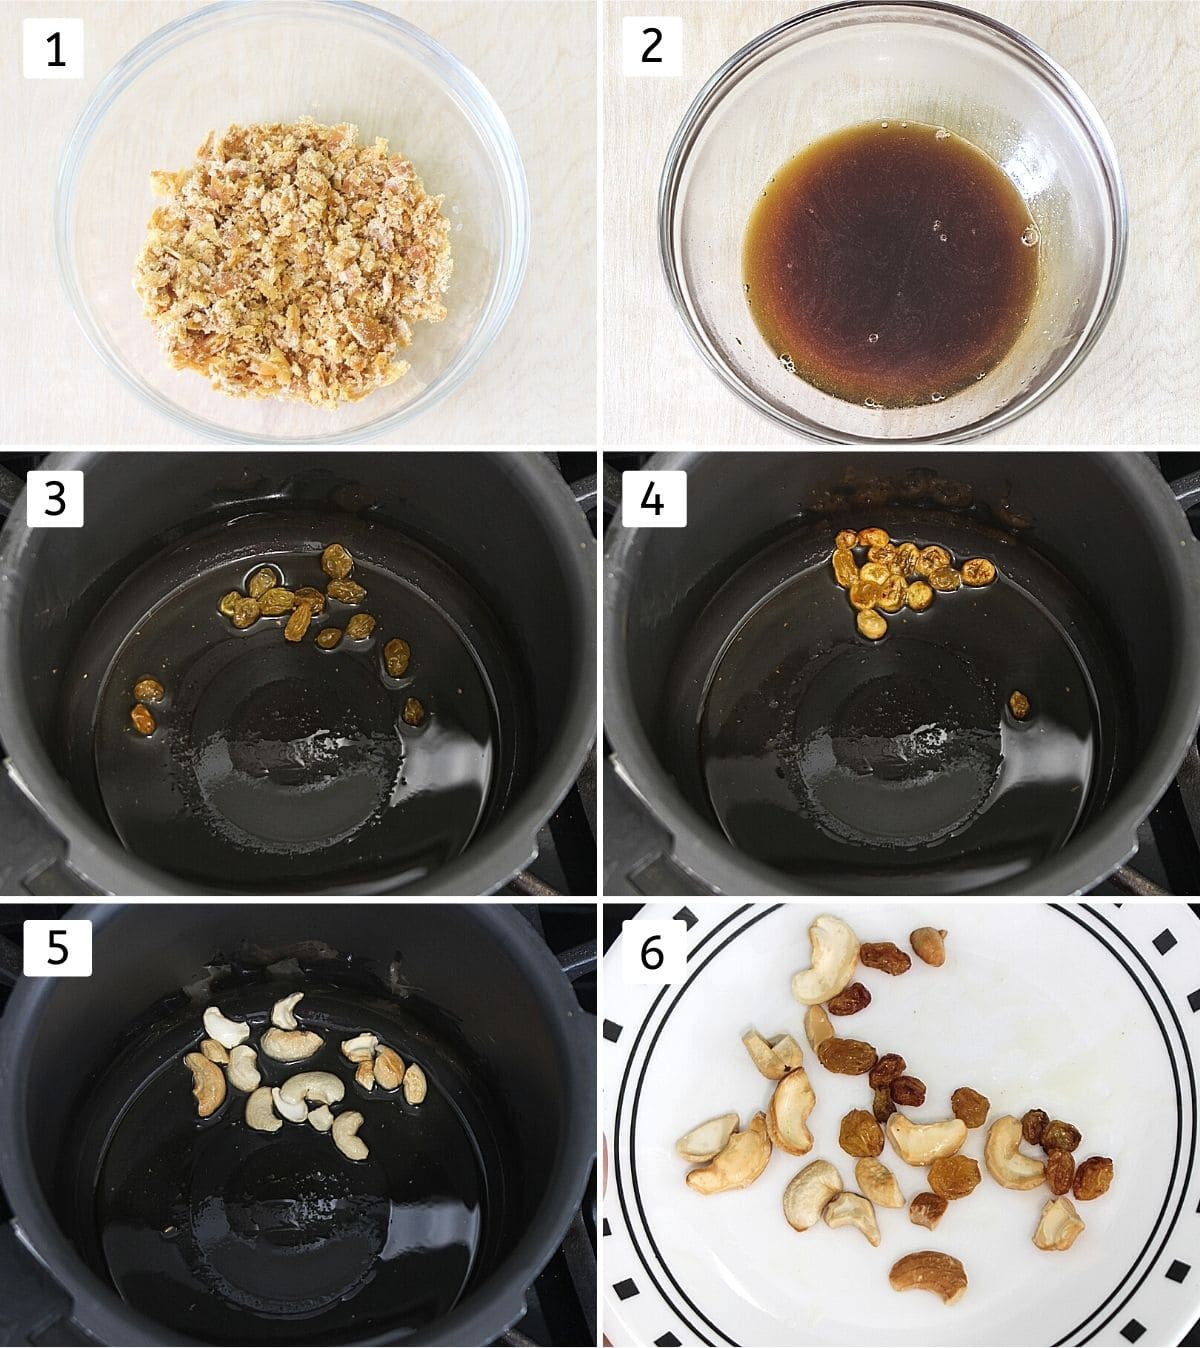 Collage of 6 images showing jaggery in a bowl, added water, raisins in ghee, puff up, cashews in ghee, fried nuts in a plate